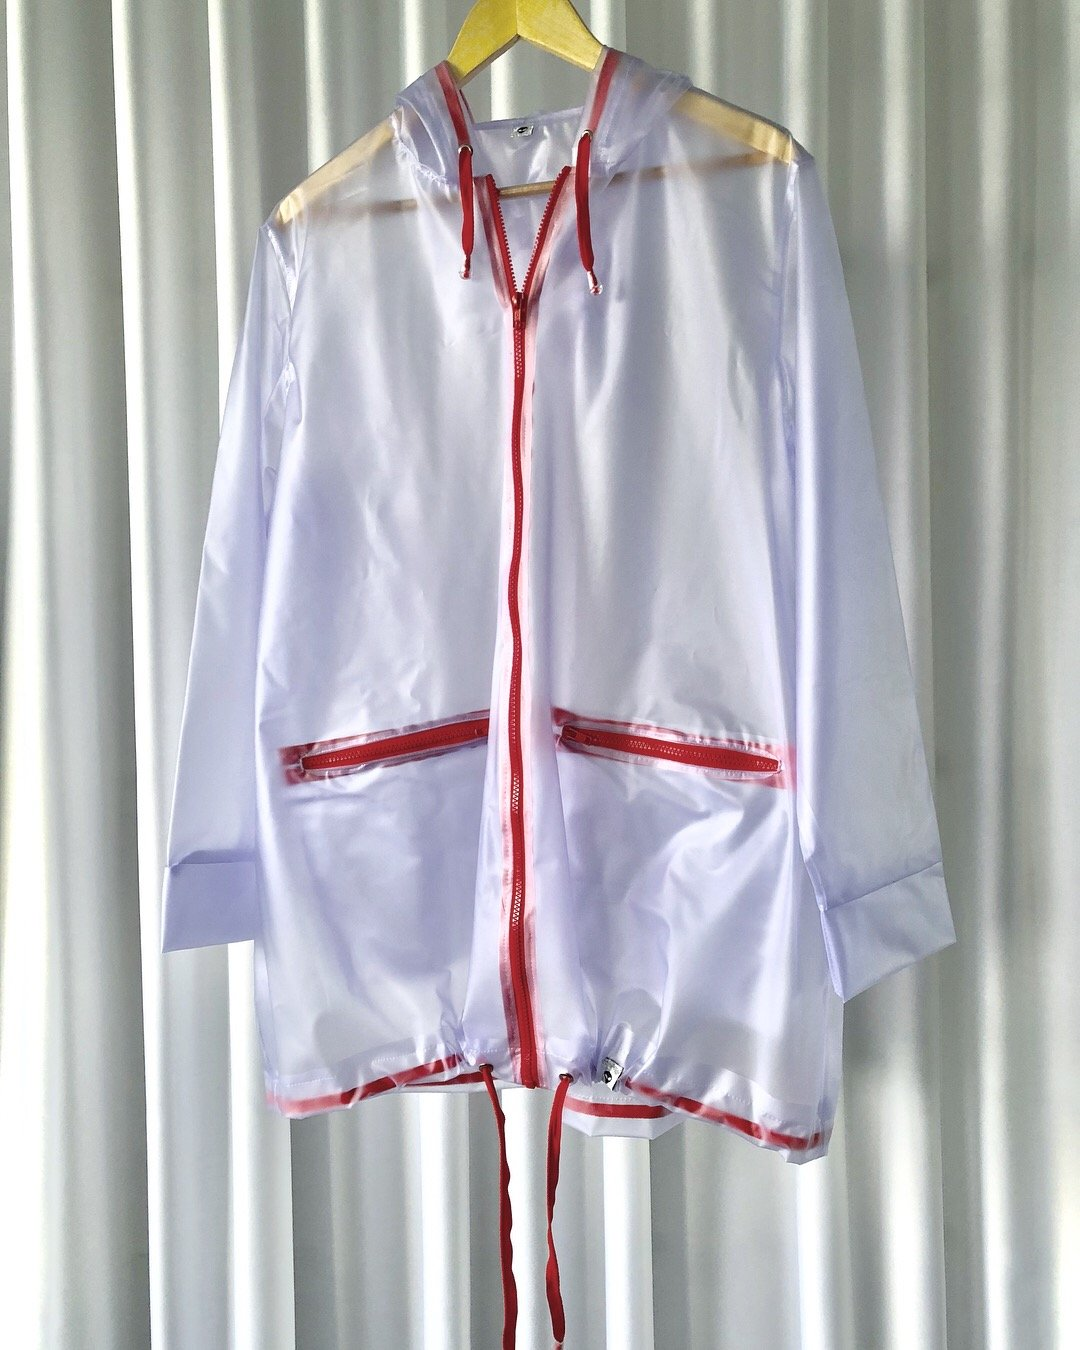 Raincoat Ed. #12 Translucent lilac/red